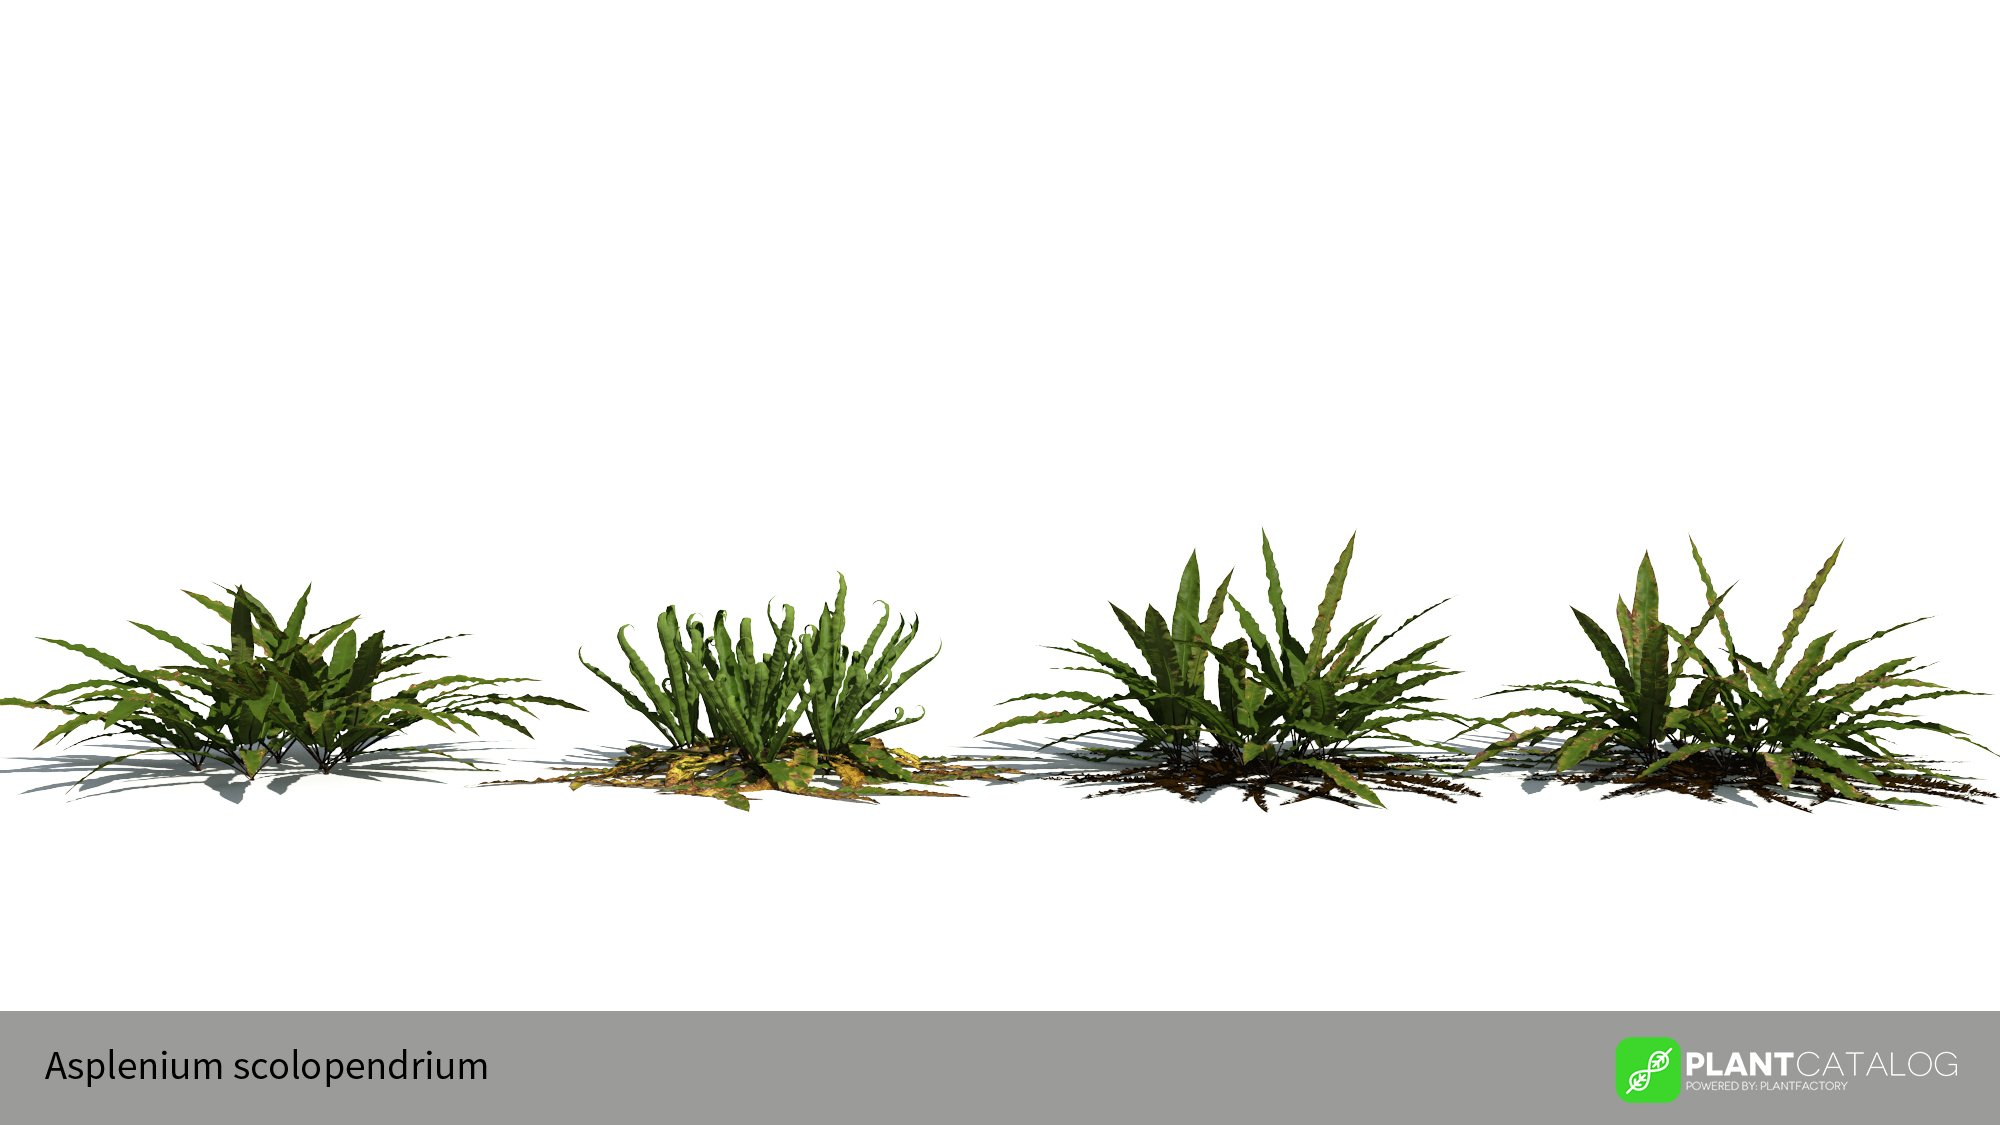 3D model of the Hart's tongue fern - Asplenium scolopendrium - from the PlantCatalog, rendered in VUE